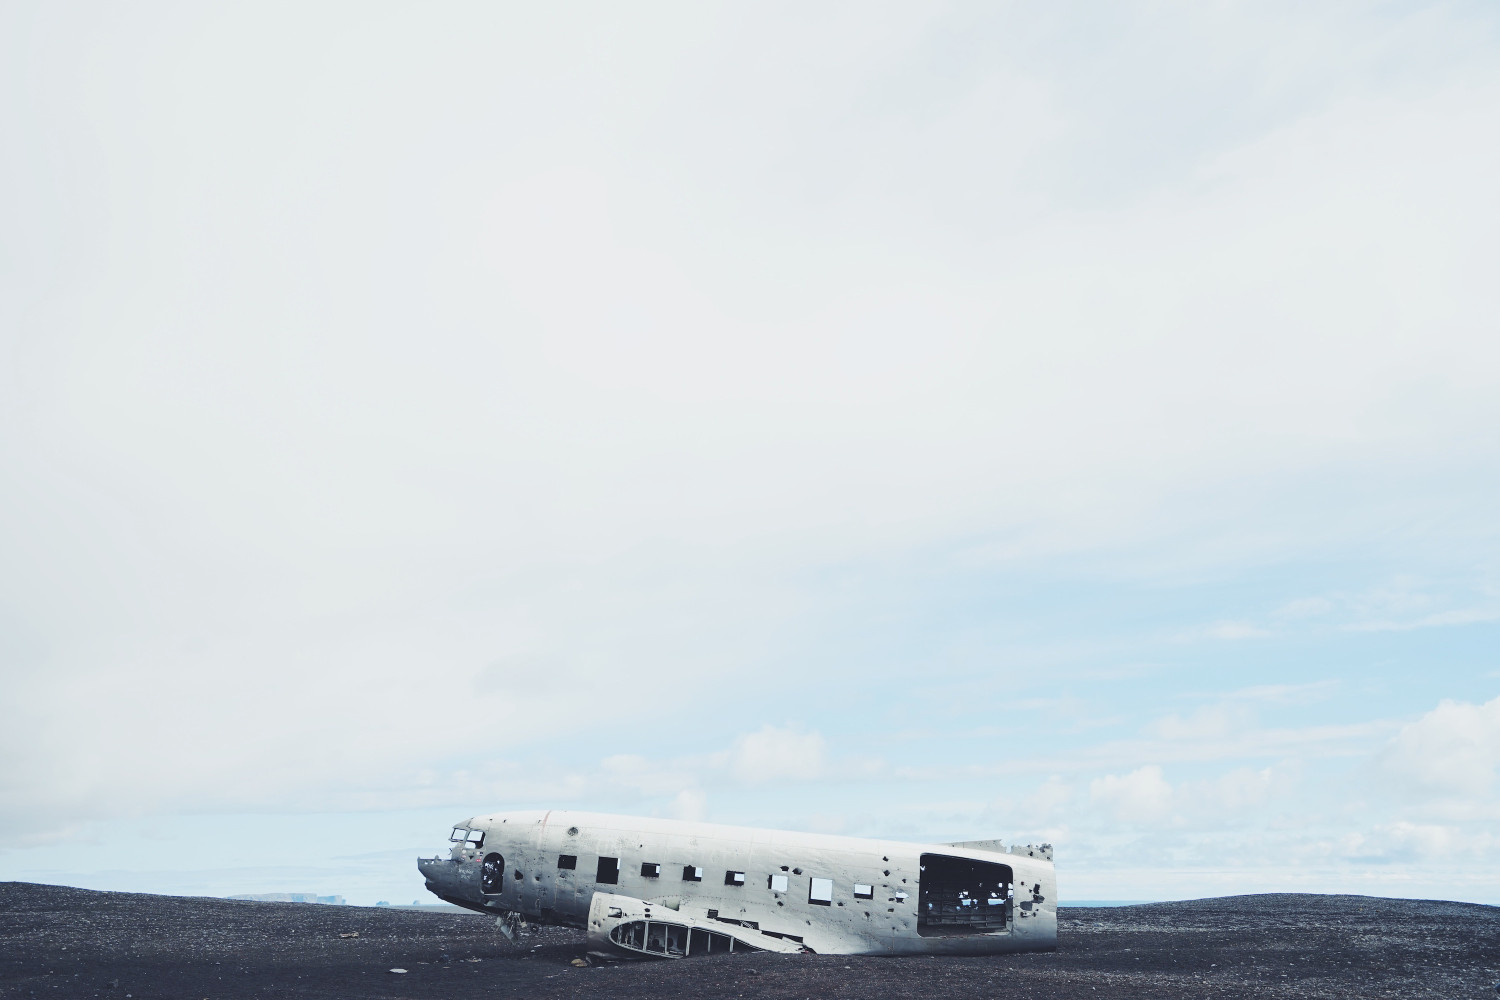 crashed-dc3-airplane-2-vik-iceland-dante-vincent-photography-30